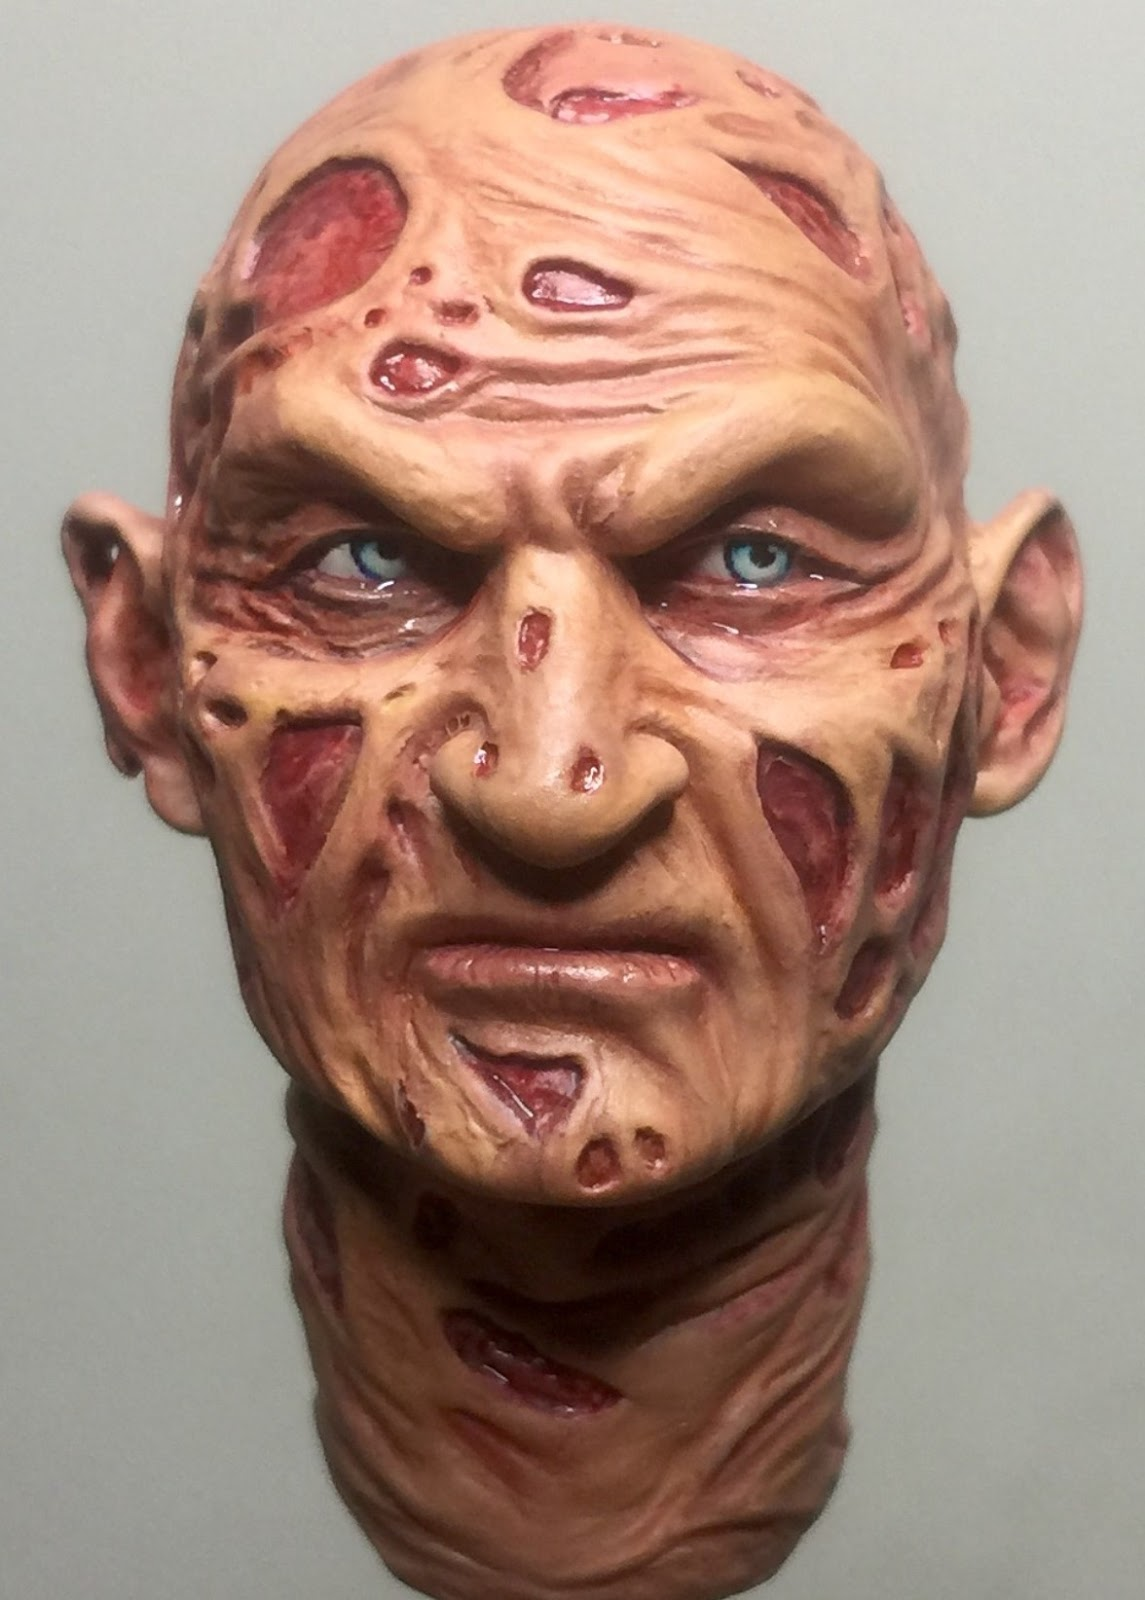 MARTIN HILLIER DIGITAL SCULPTURE AND ART - 1/6 SCALE ...